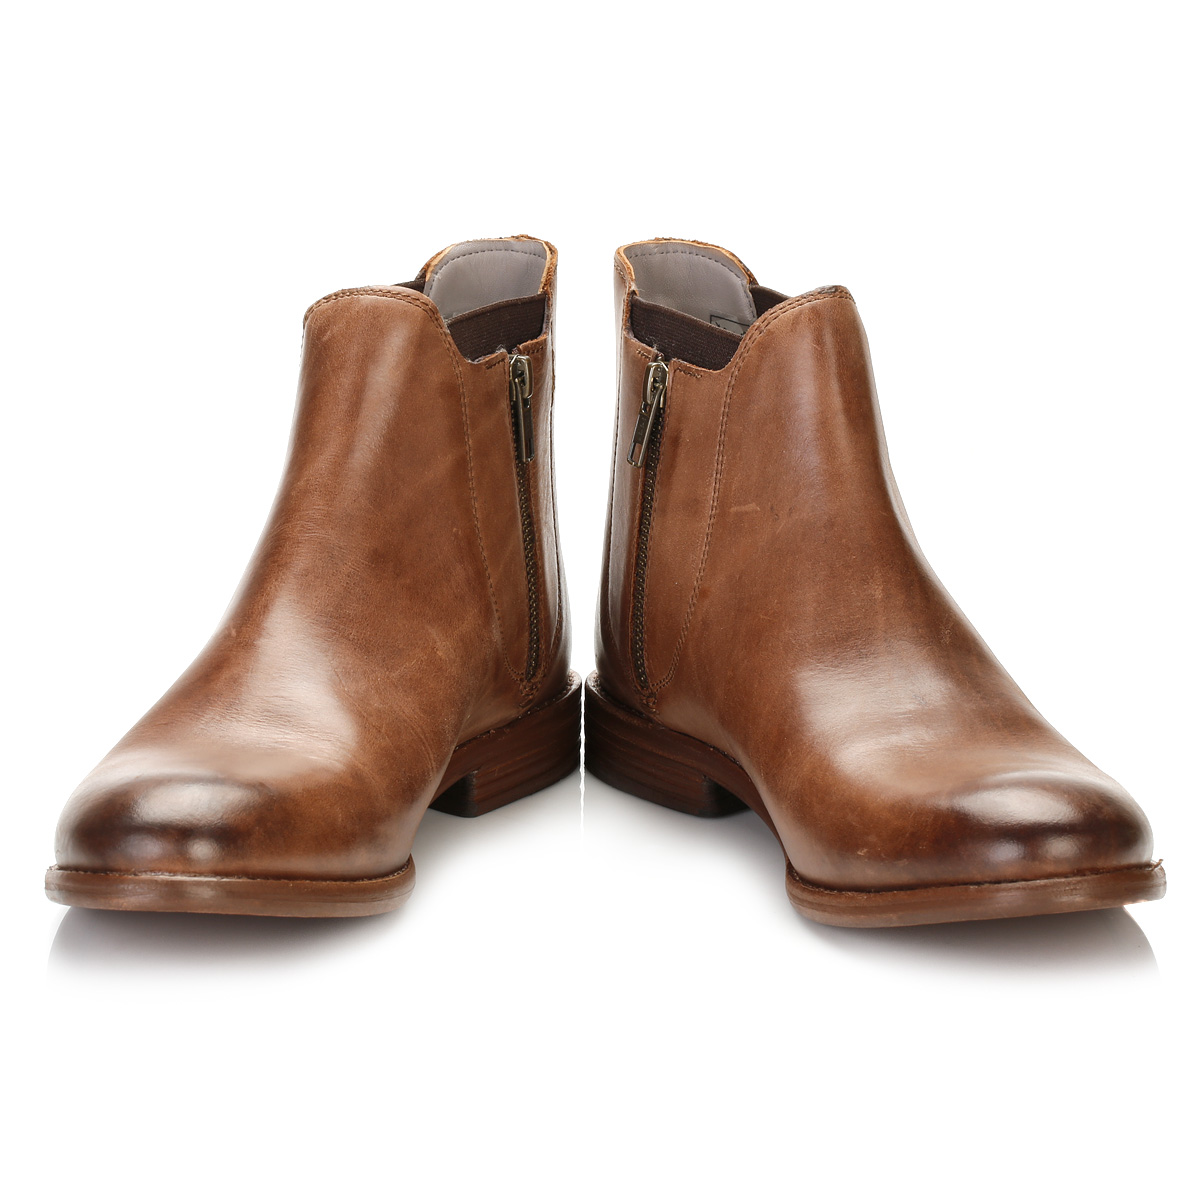 Find a great selection of men's Chelsea boots at archivesnapug.cf Shop for top brands like Timberland, Prada, Ted Baker London & more. Free shipping & returns.